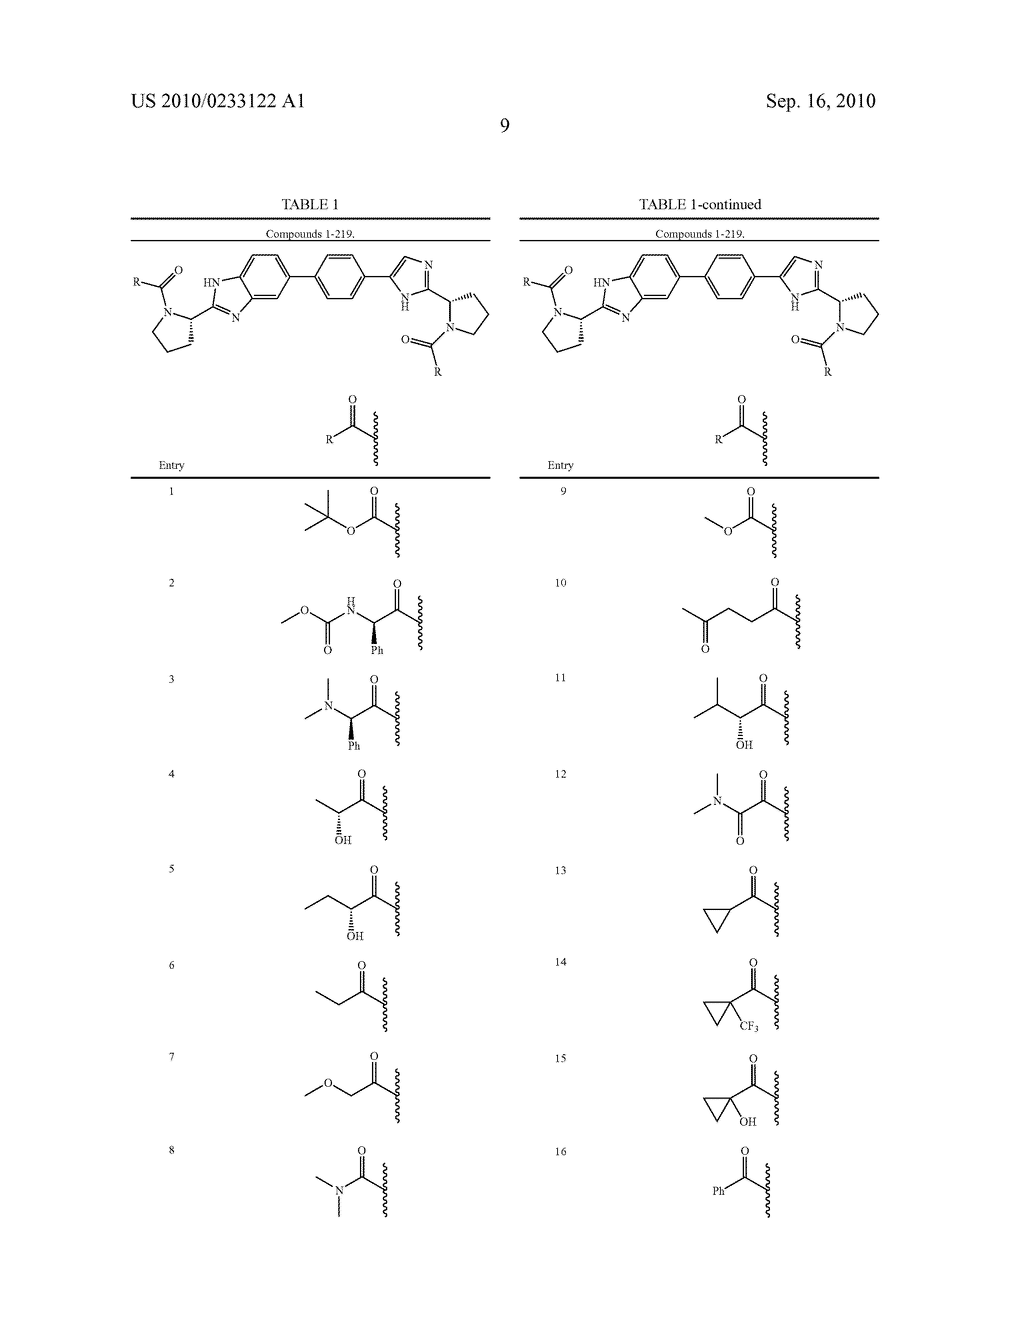 NOVEL BENZIMIDAZOLE DERIVATIVES - diagram, schematic, and image 10